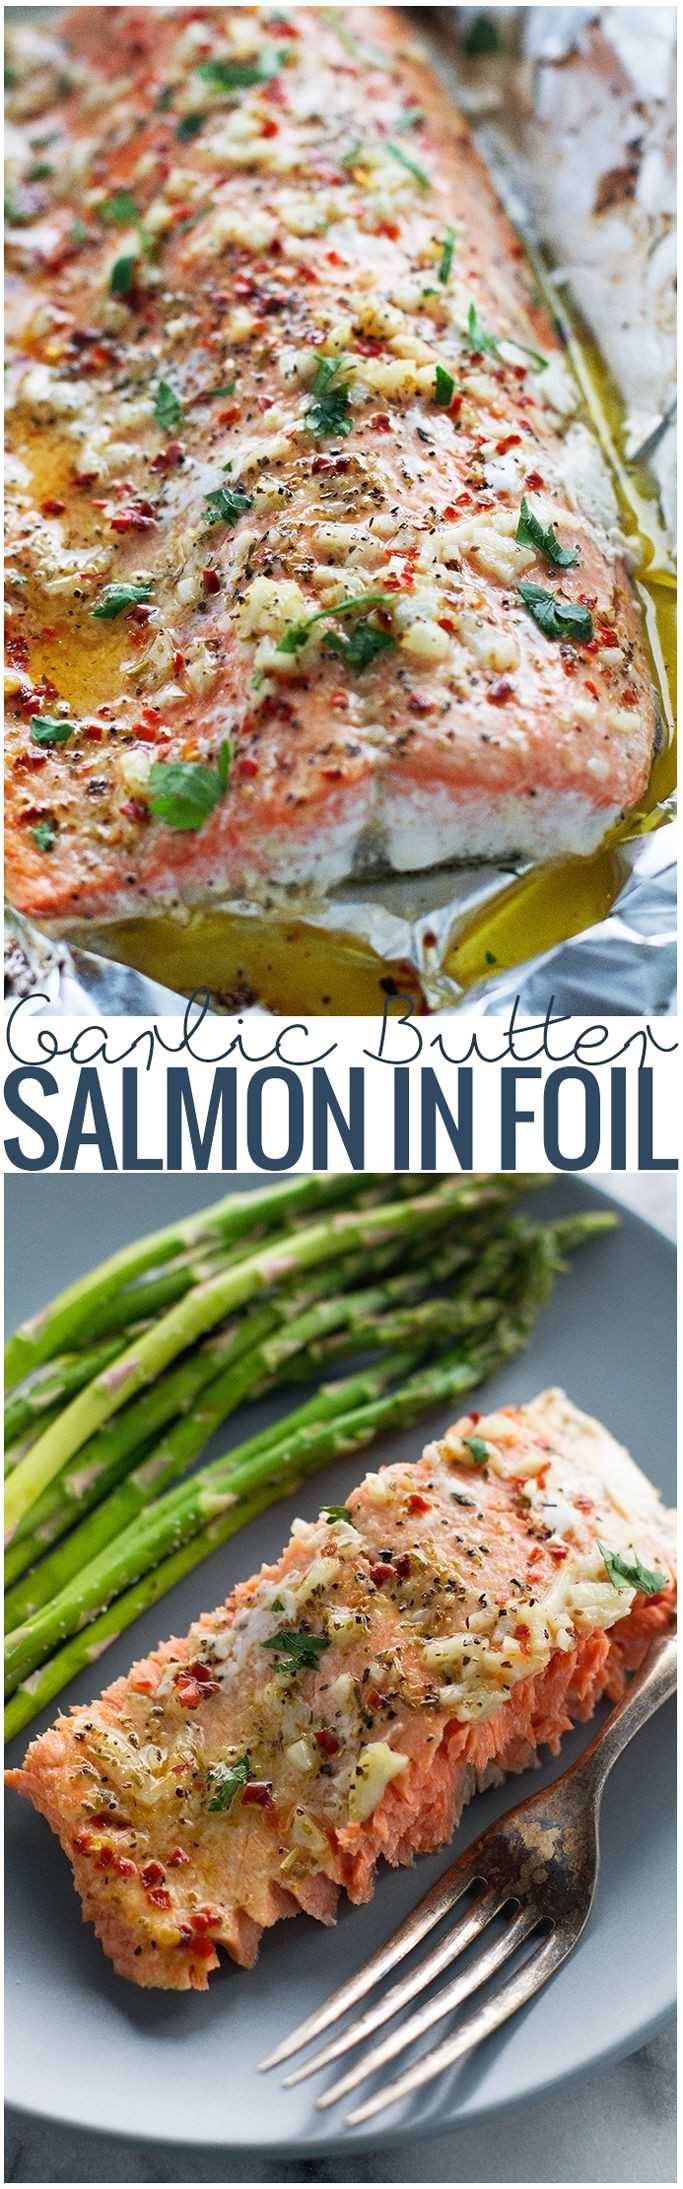 lemon garlic butter baked salmon in foil takes less than 30 minutes perfect for weeknight dinners